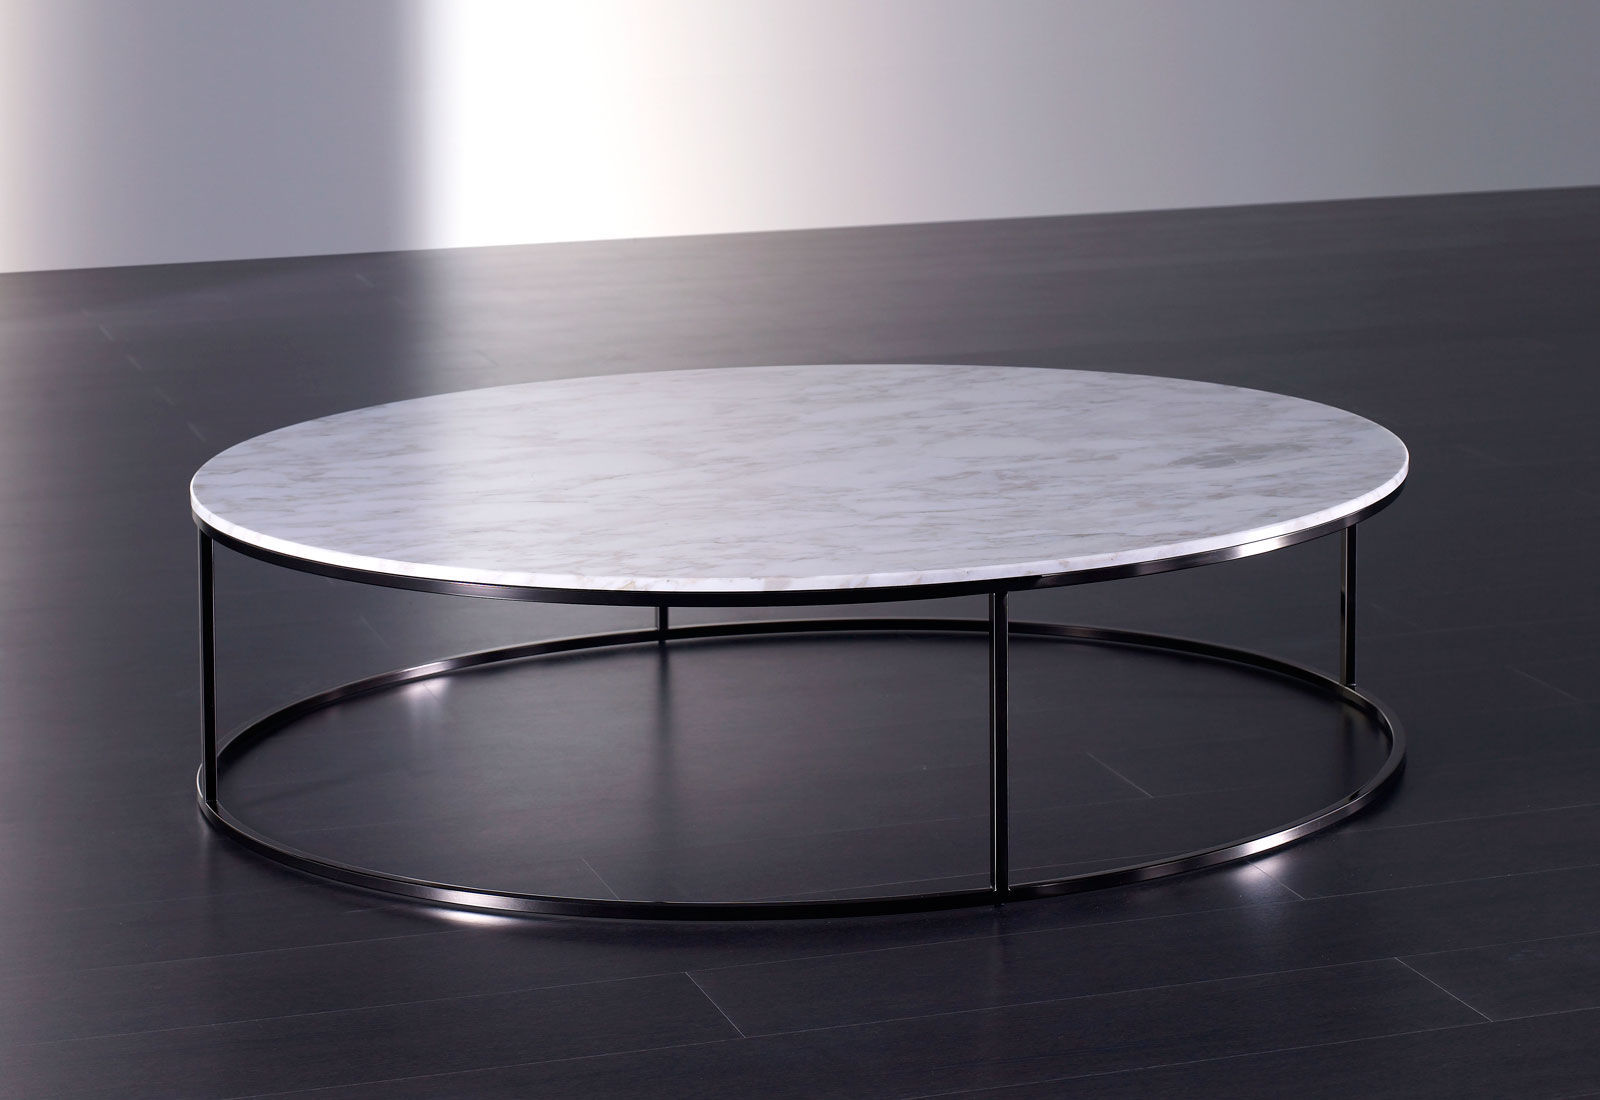 Table basse ronde en marbre mobilier design d coration - Table ronde en marbre ...